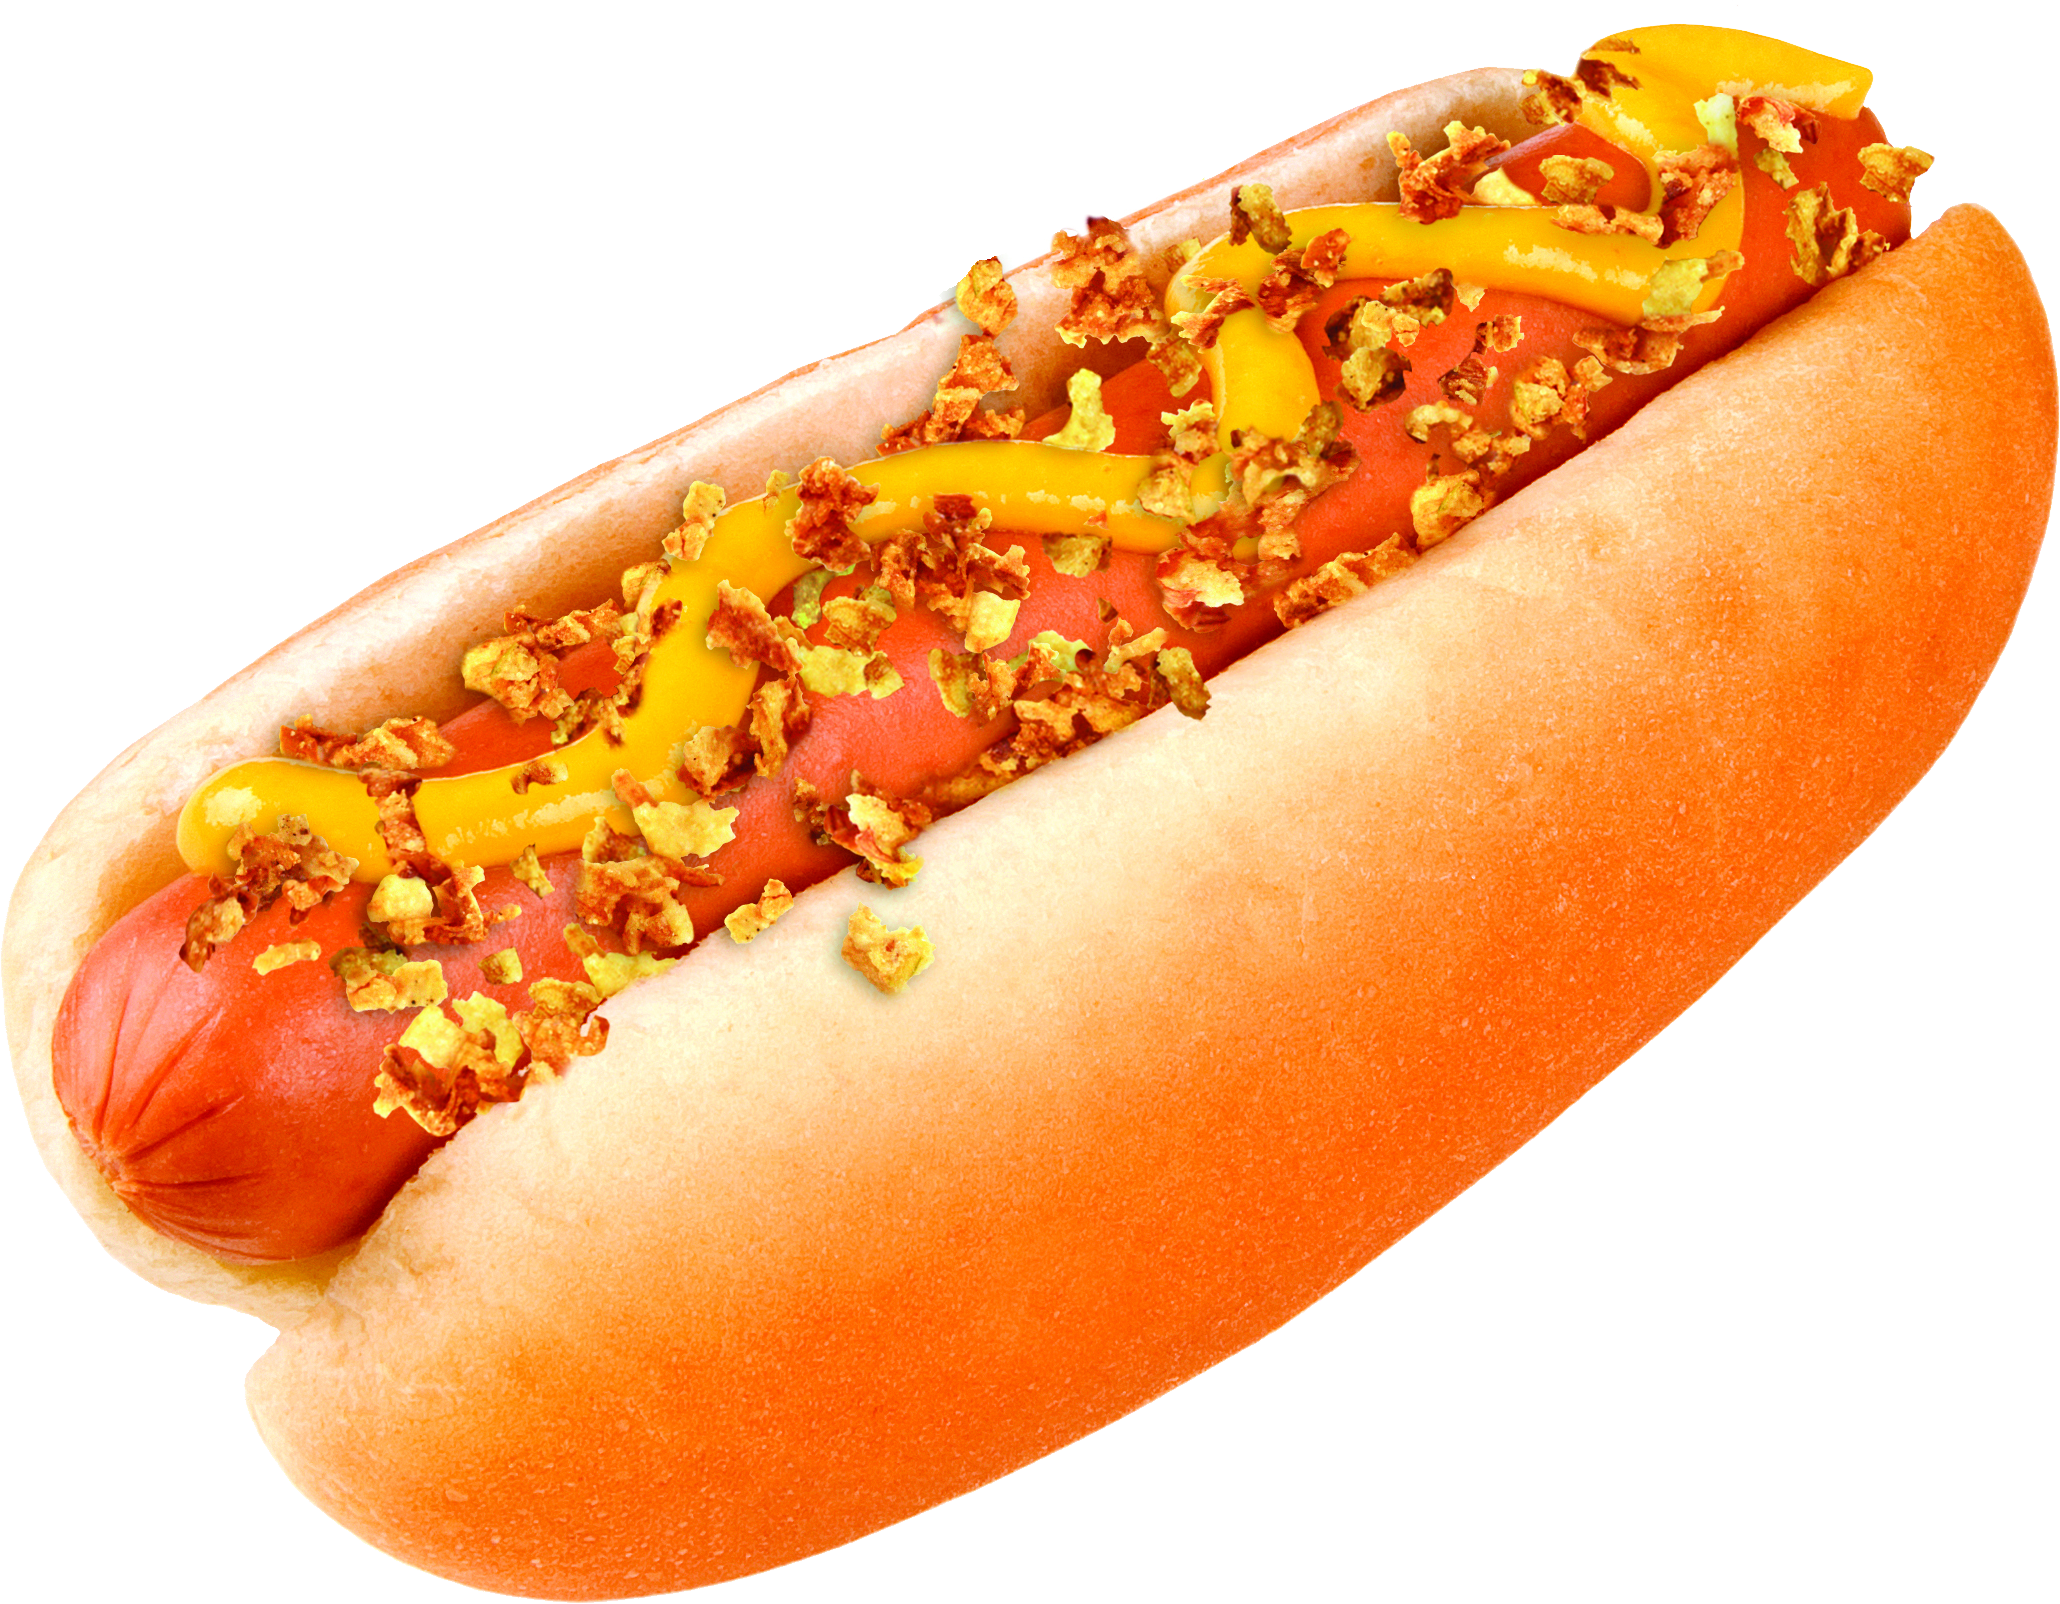 Hot Dog Png Image Hot Dogs Hot Food Png